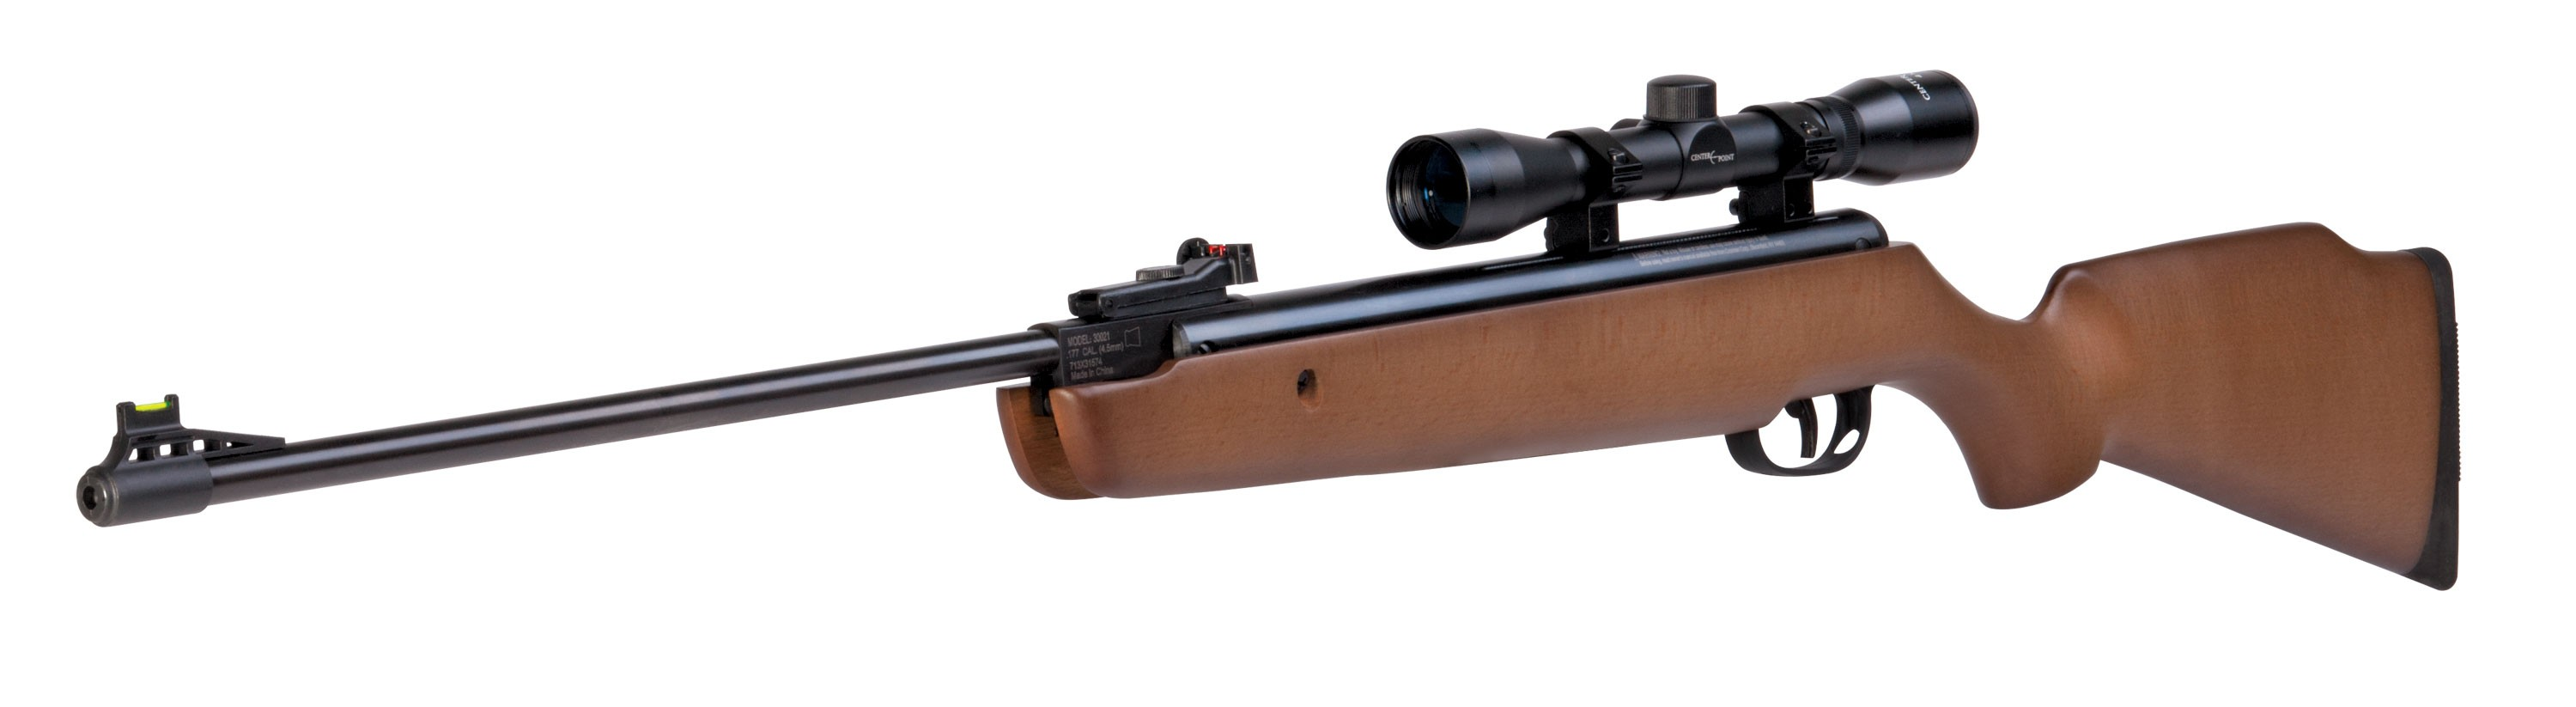 The Best Gas Piston Air Rifle